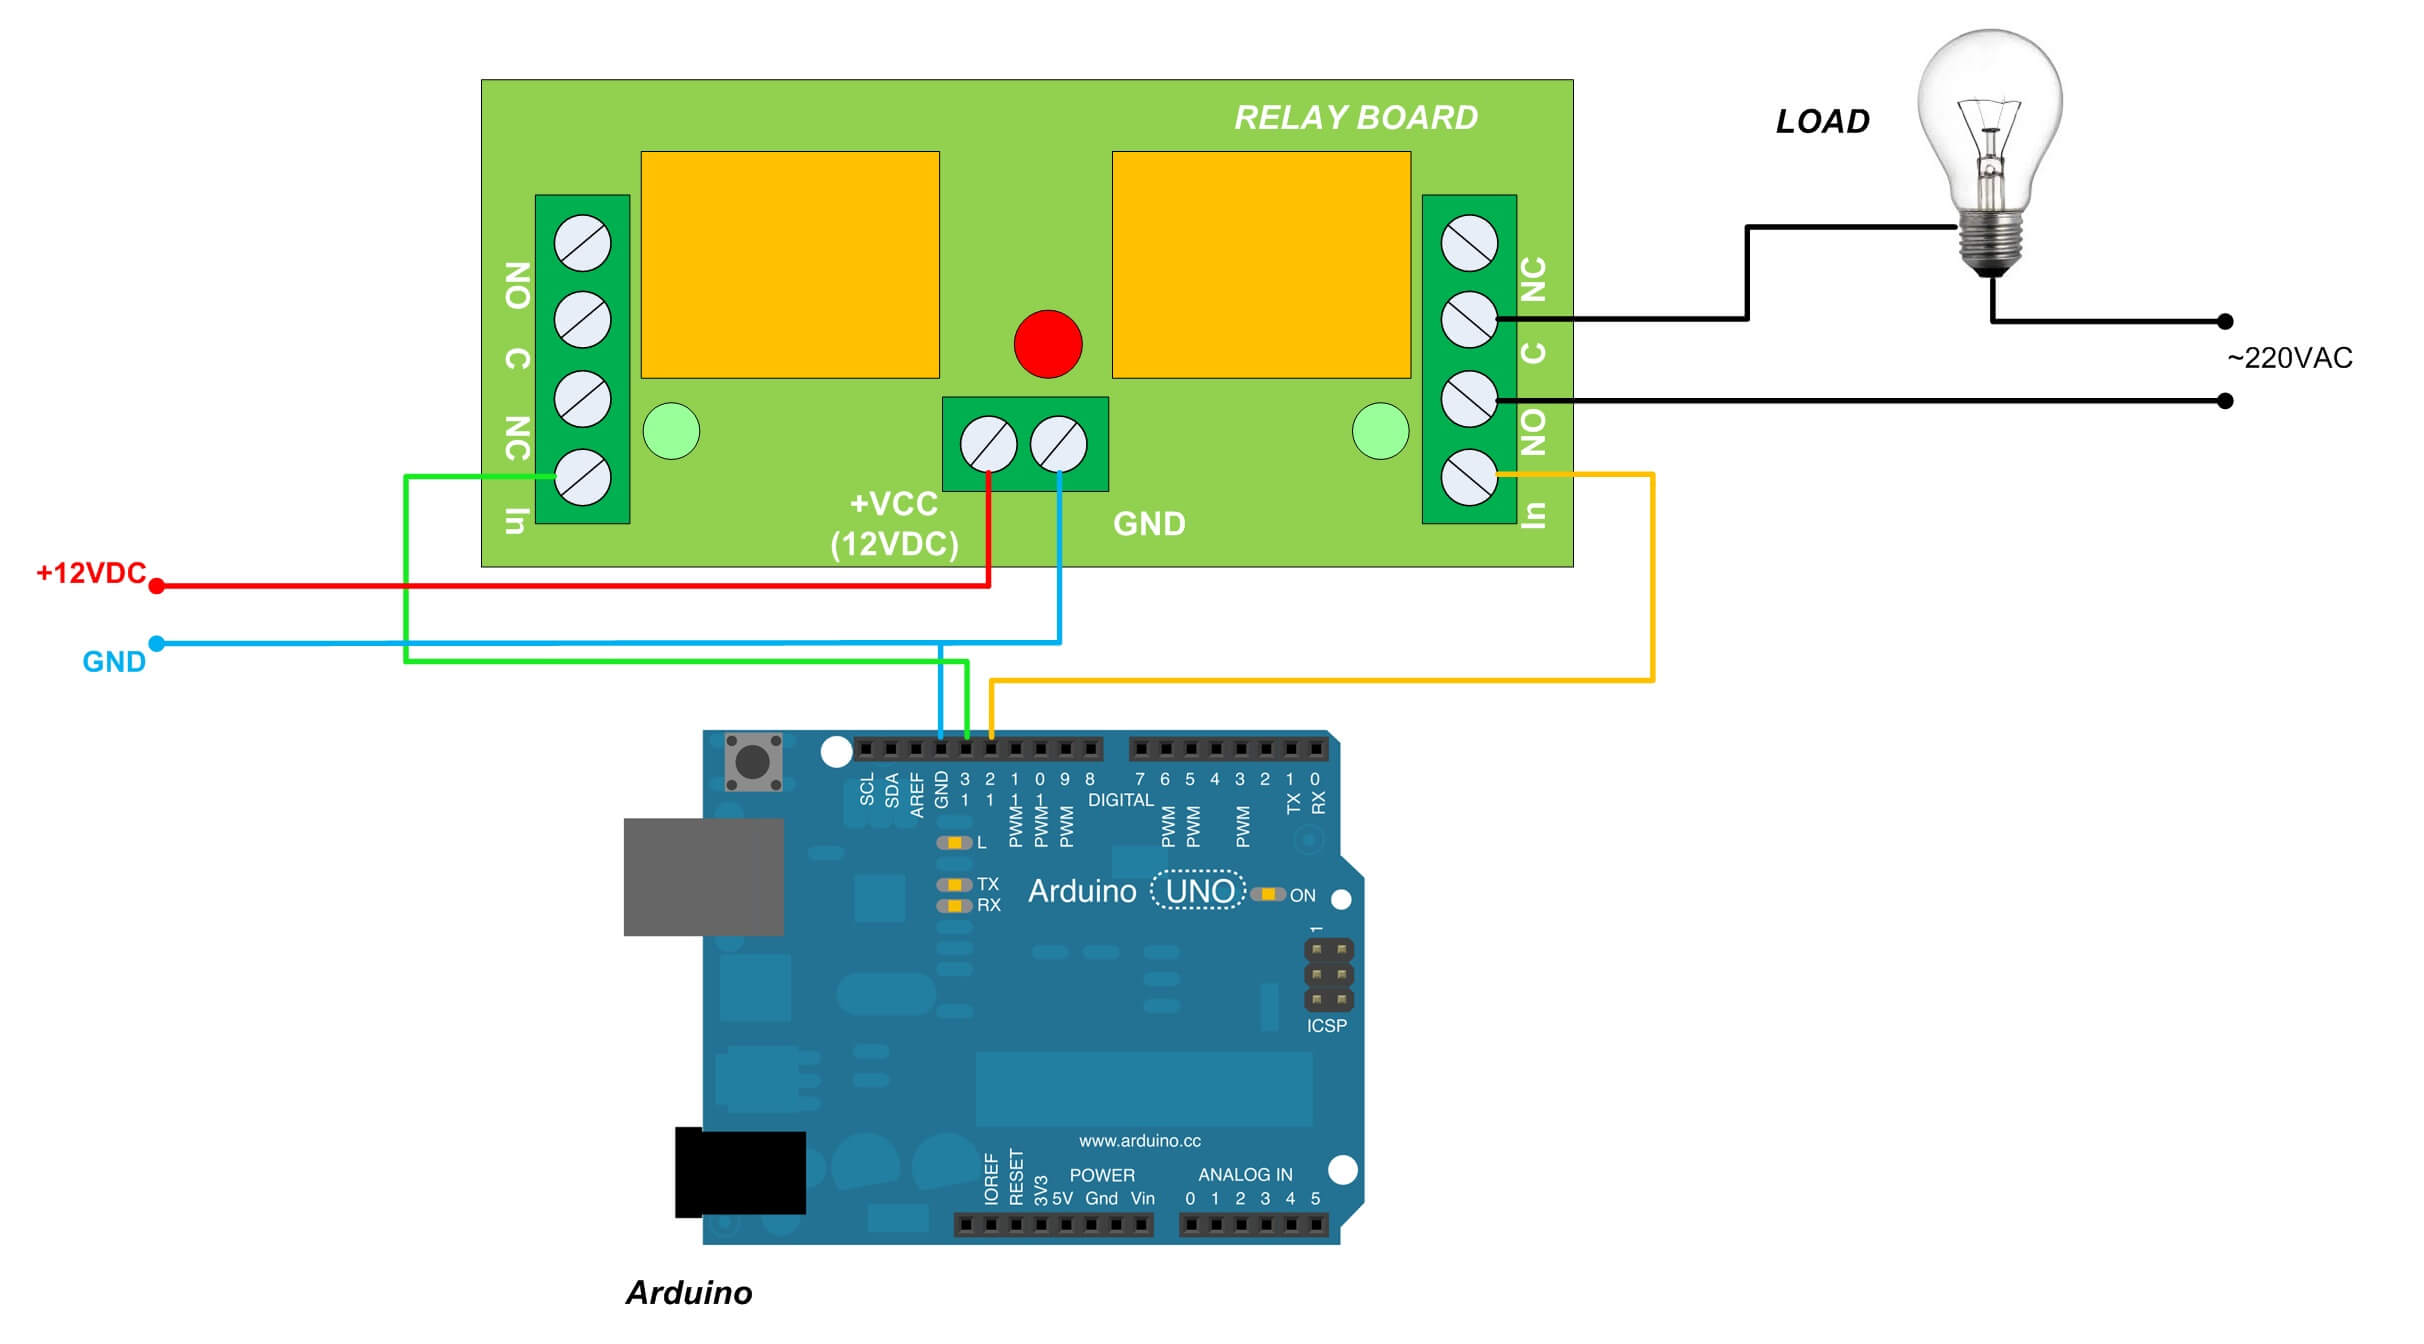 Relay Board 12v 2 Channels For Raspberry Pi Arduino Picavr 0 30v Power Supply Circuit Diagram Connected To